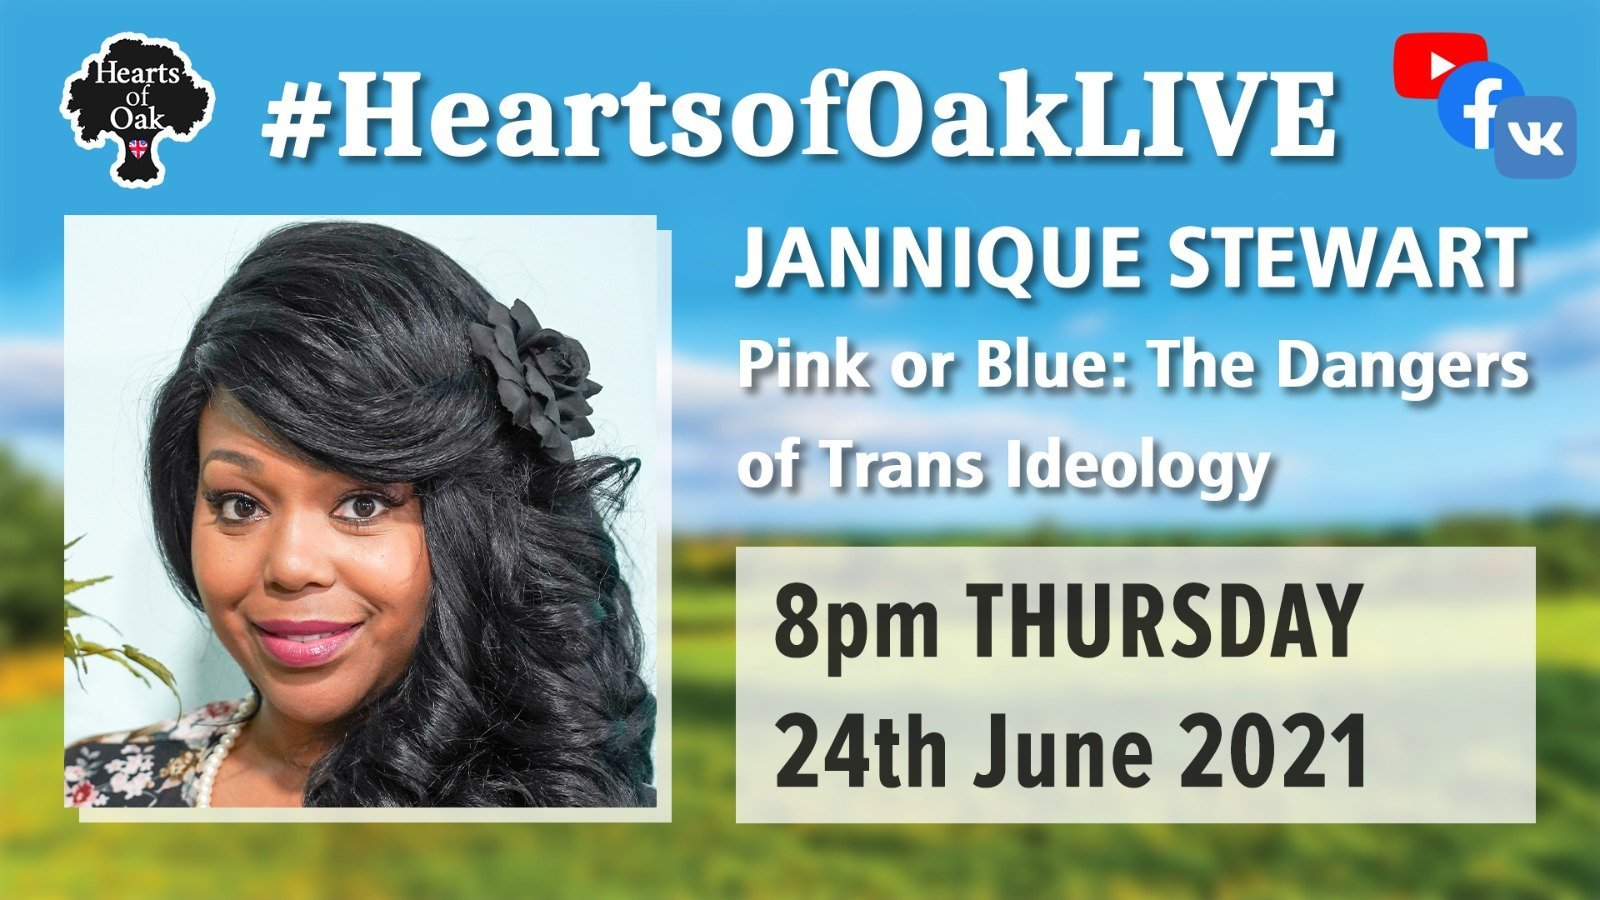 Jannique Stewart: Pink or Blue - The Dangers of Trans Ideology